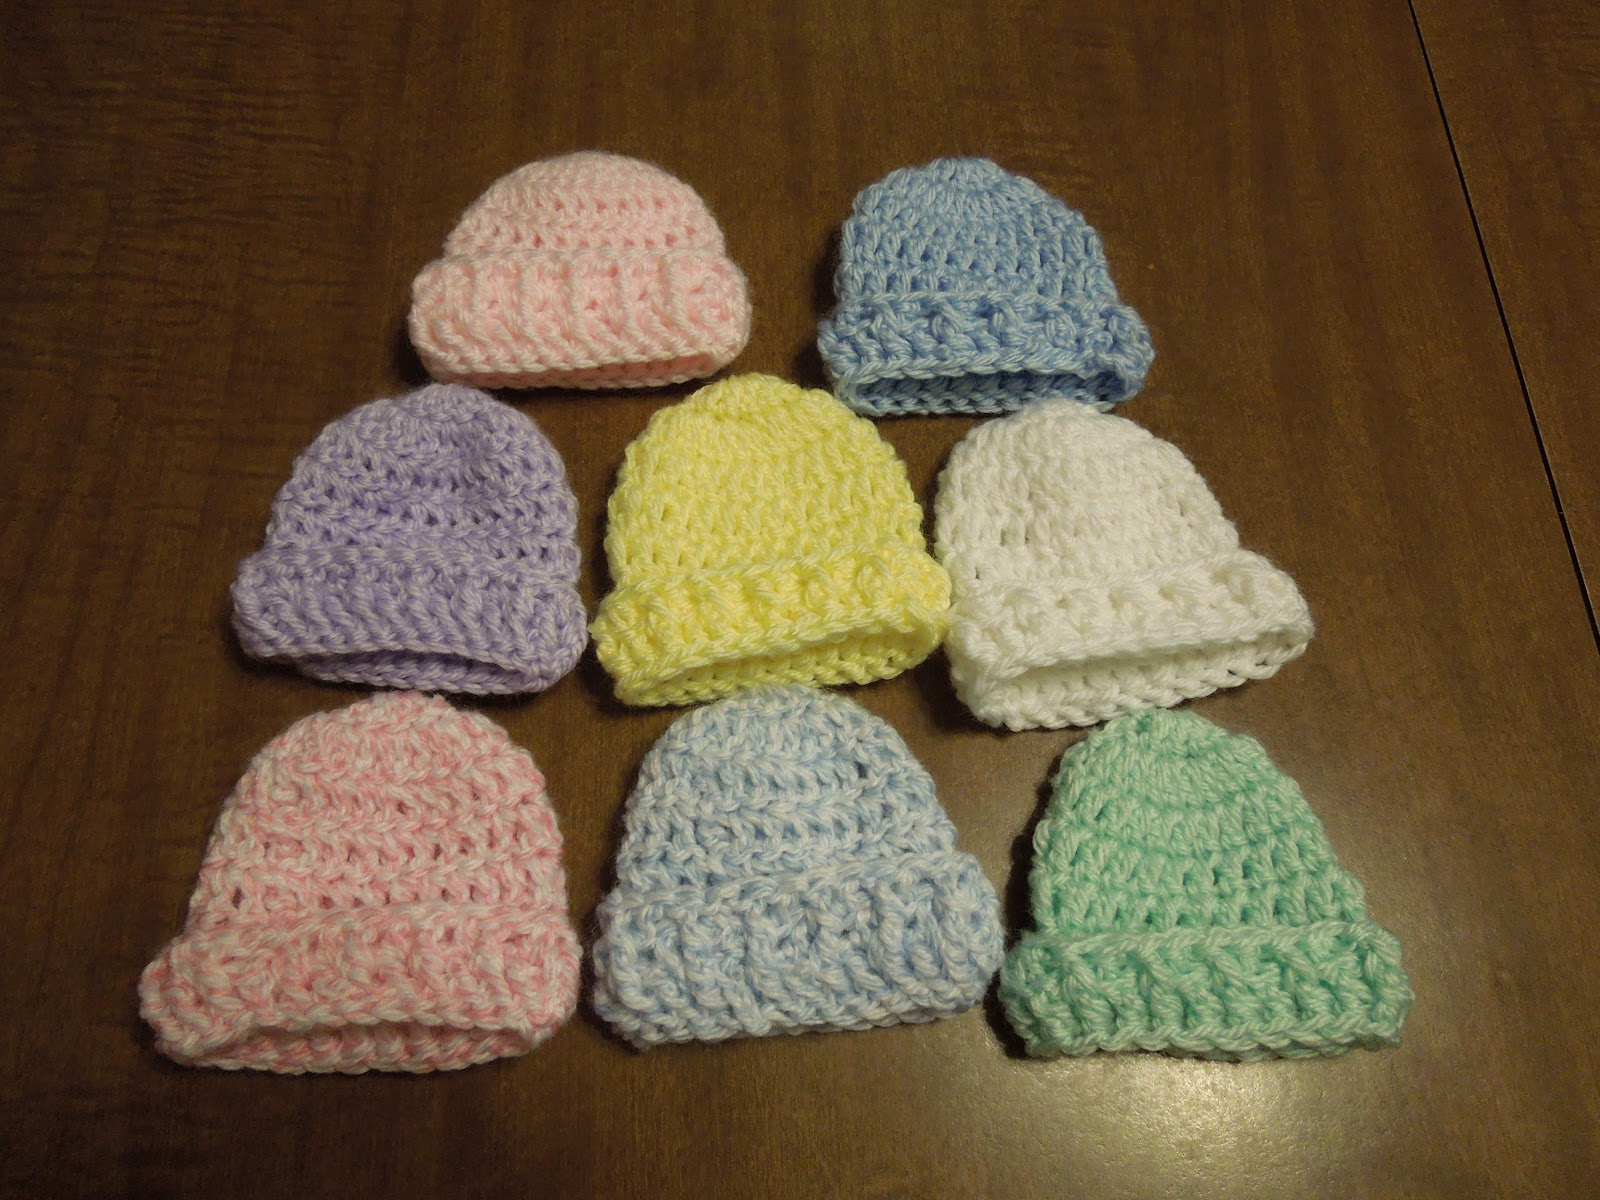 839c74bed Grandma's Promise: Simple Crochet Preemie Hat